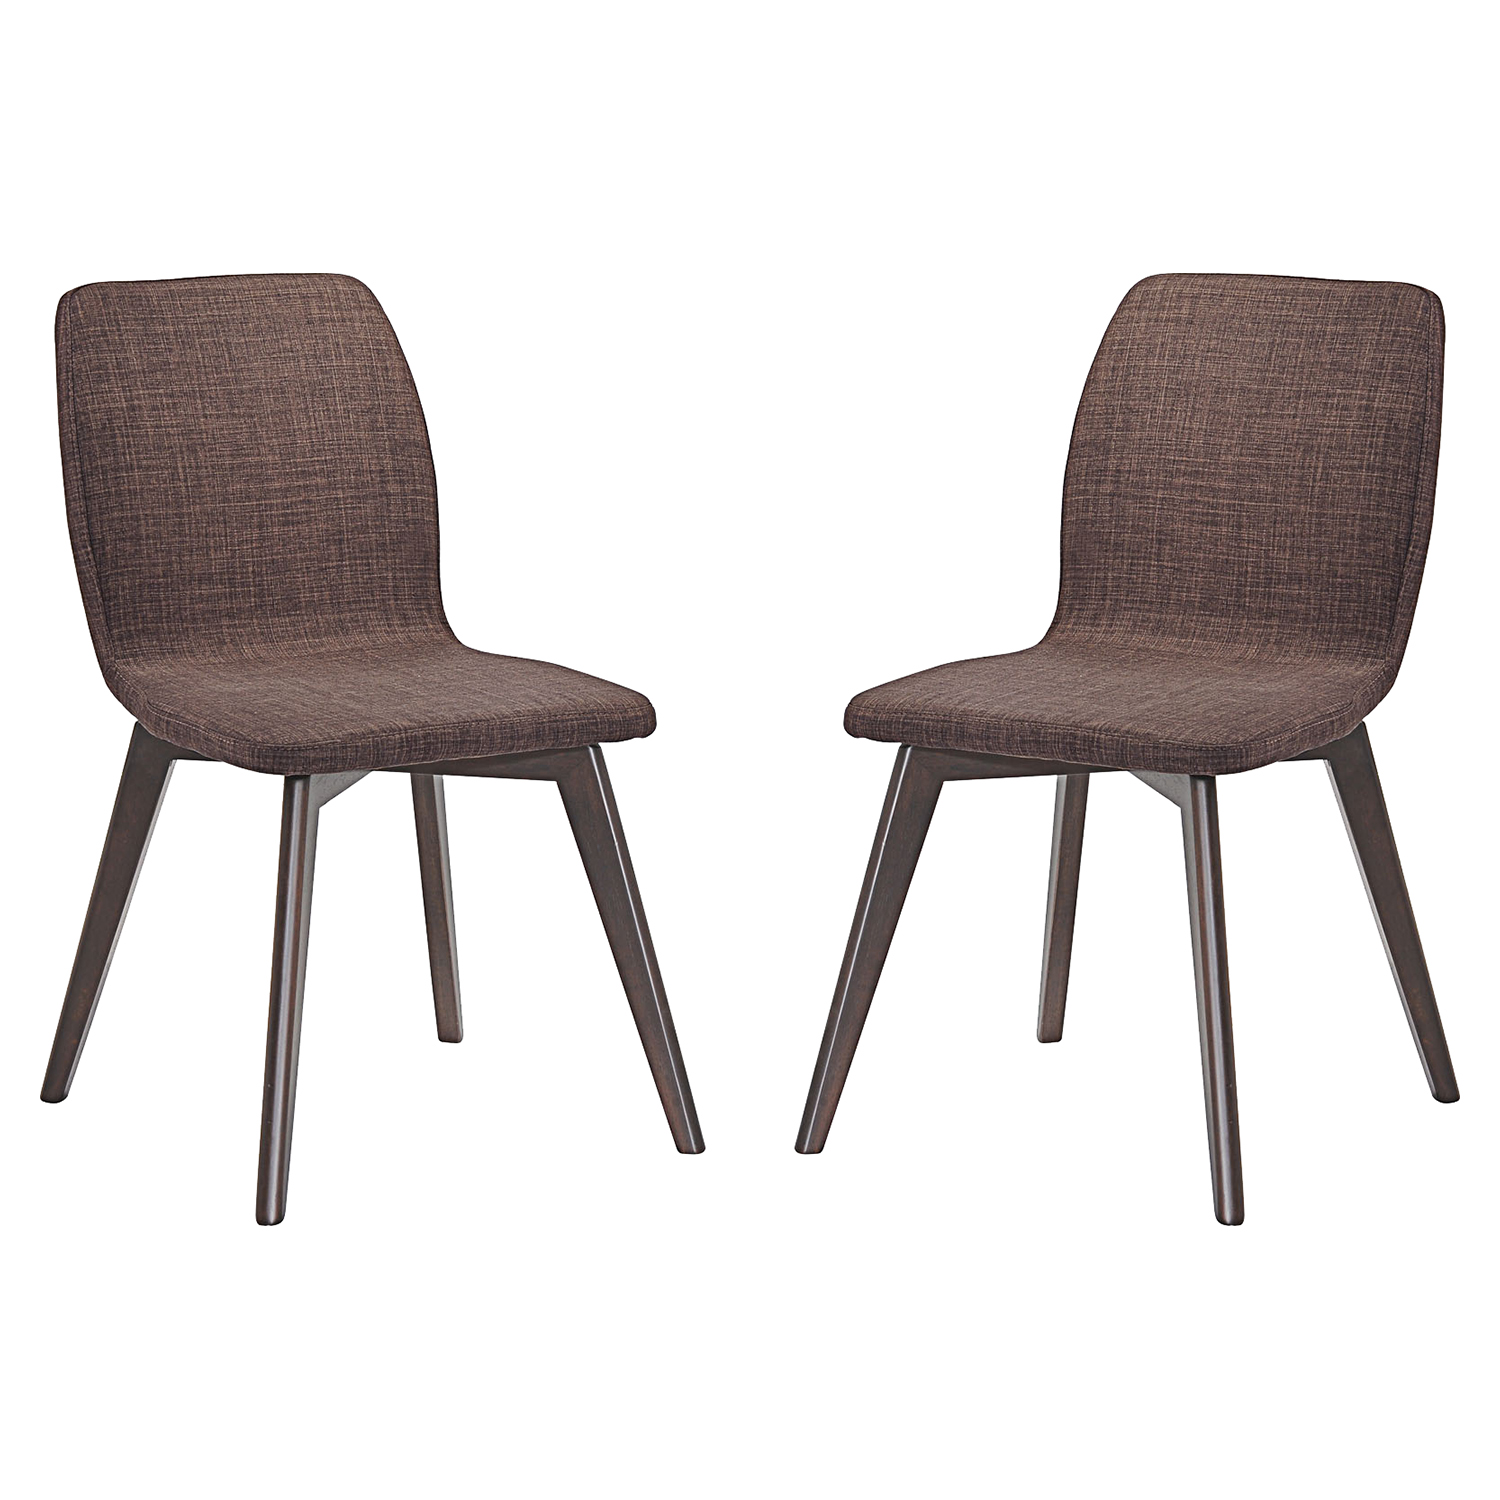 Proclaim Upholstery Dining Side Chair - Walnut, Mocha (Set of 2) - EEI-2059-WAL-MOC-SET